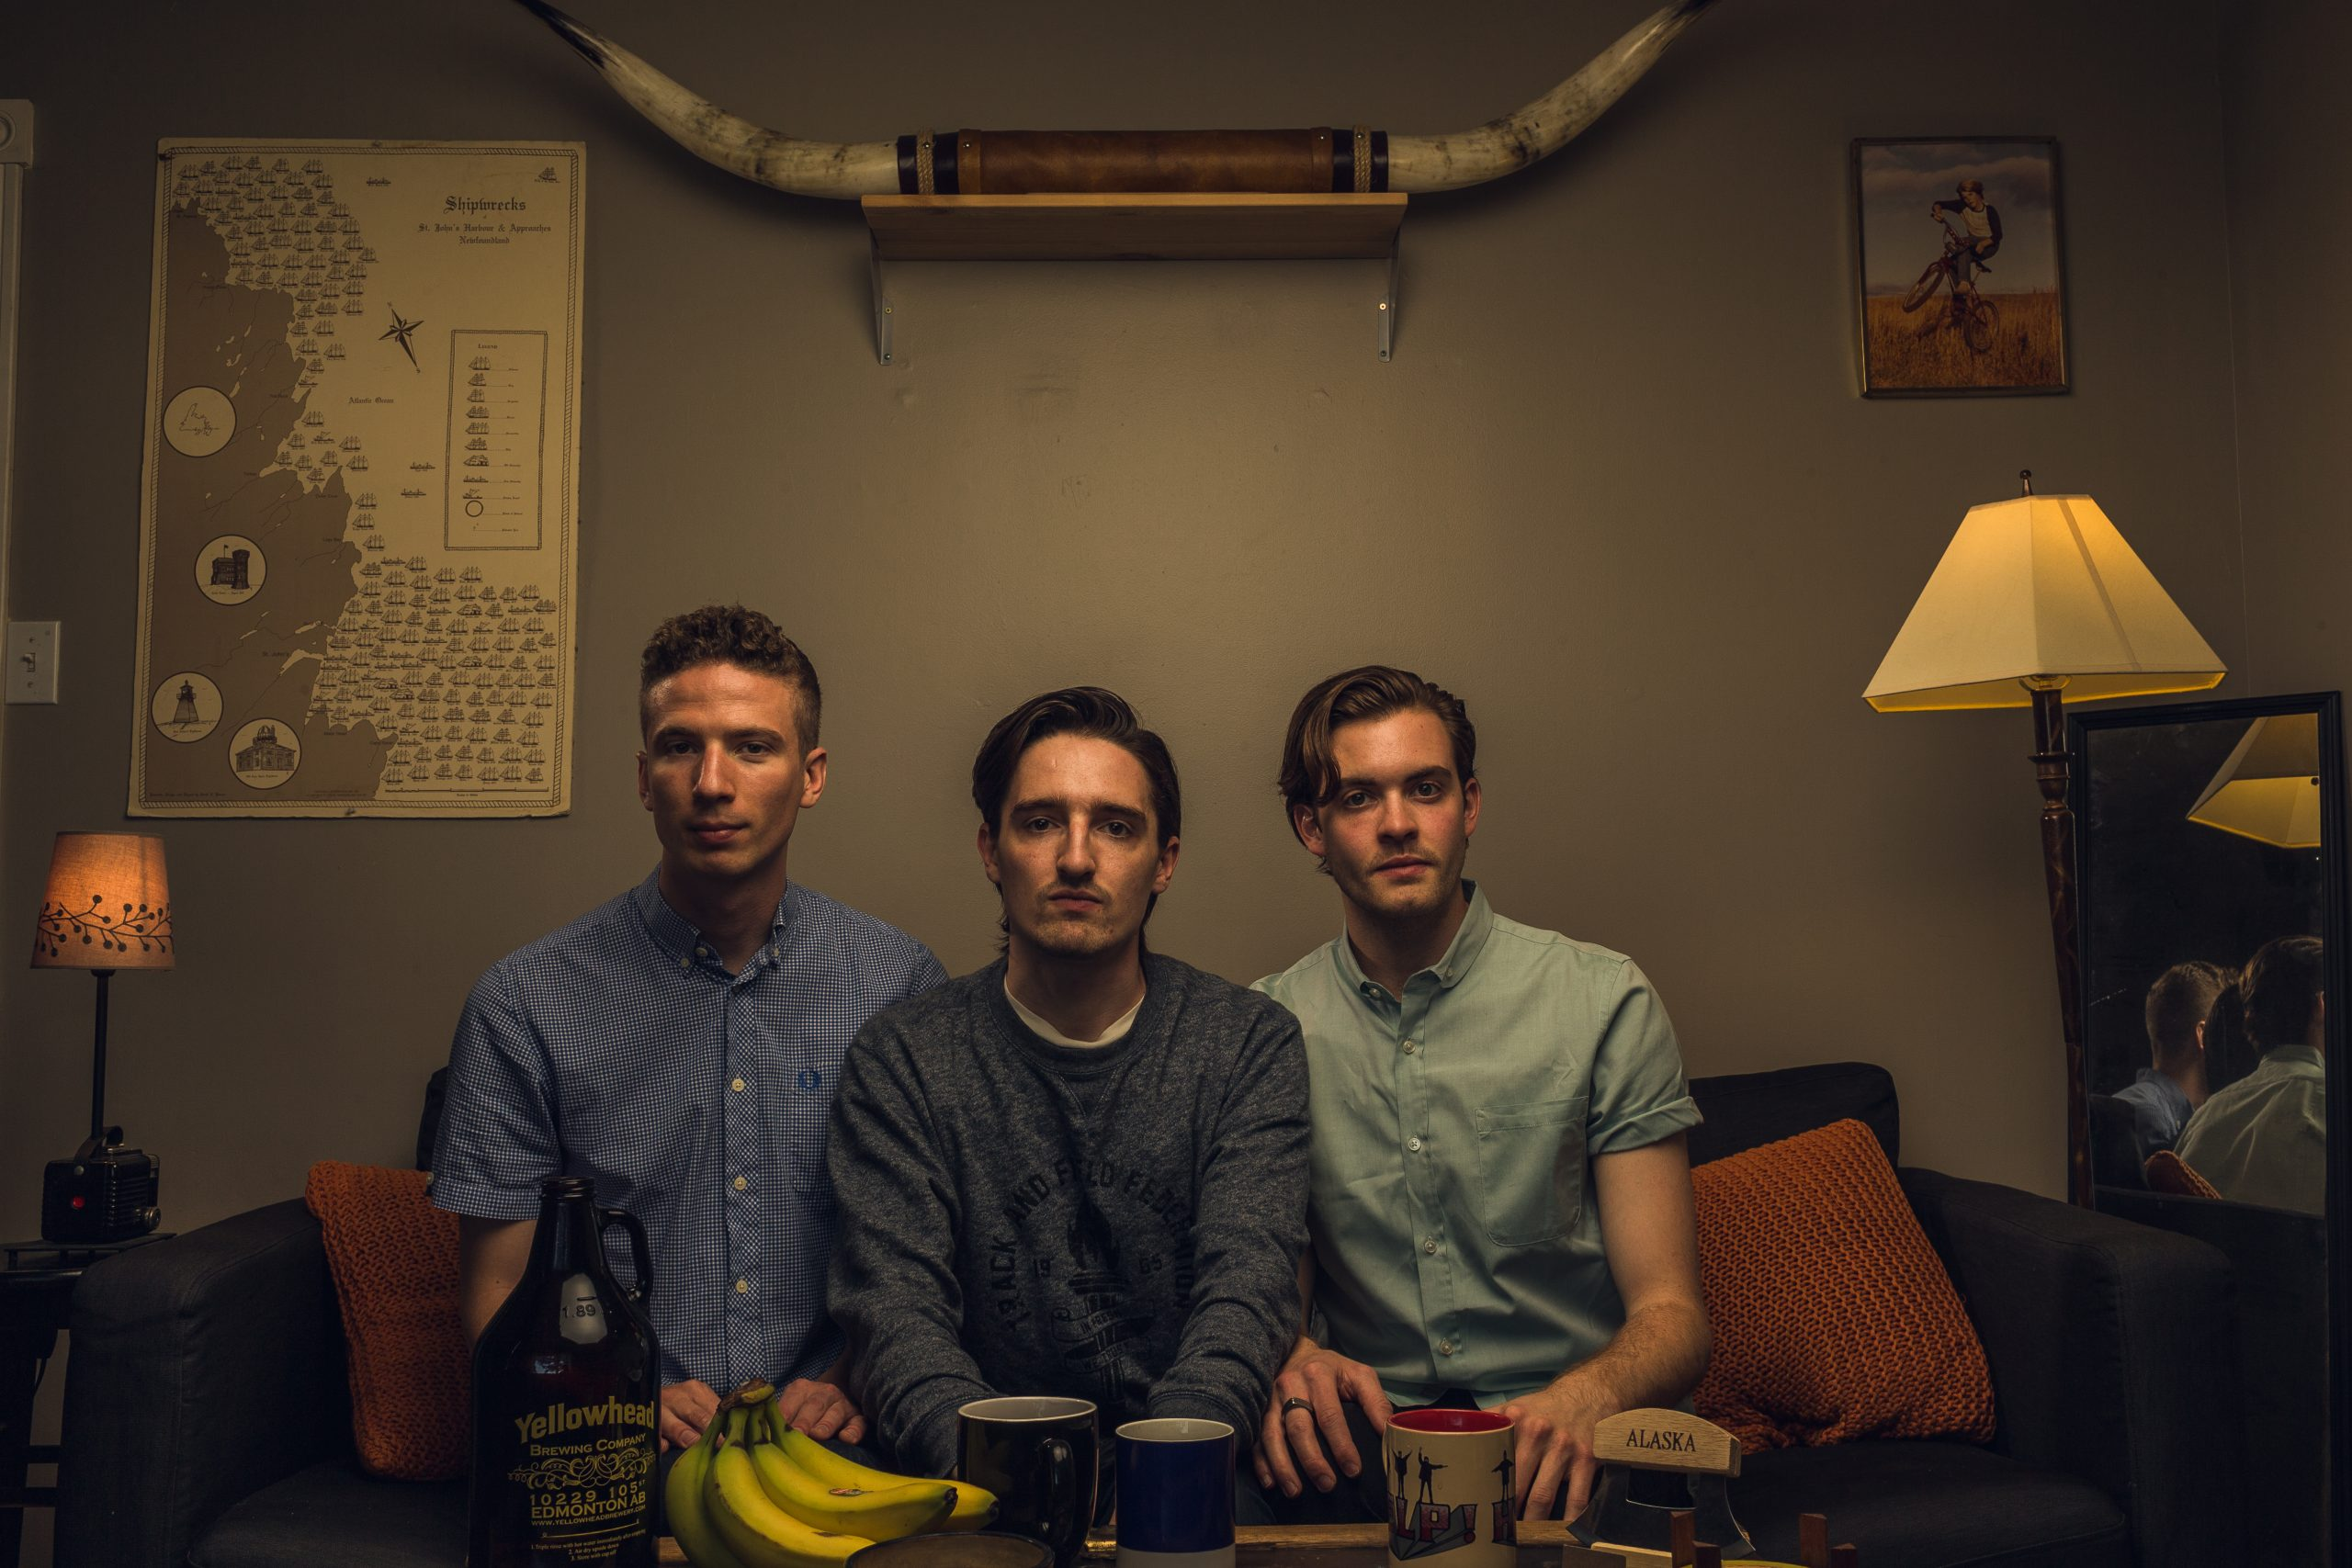 Xposure show presents Scenic Route to Alaska and Boreal Sons